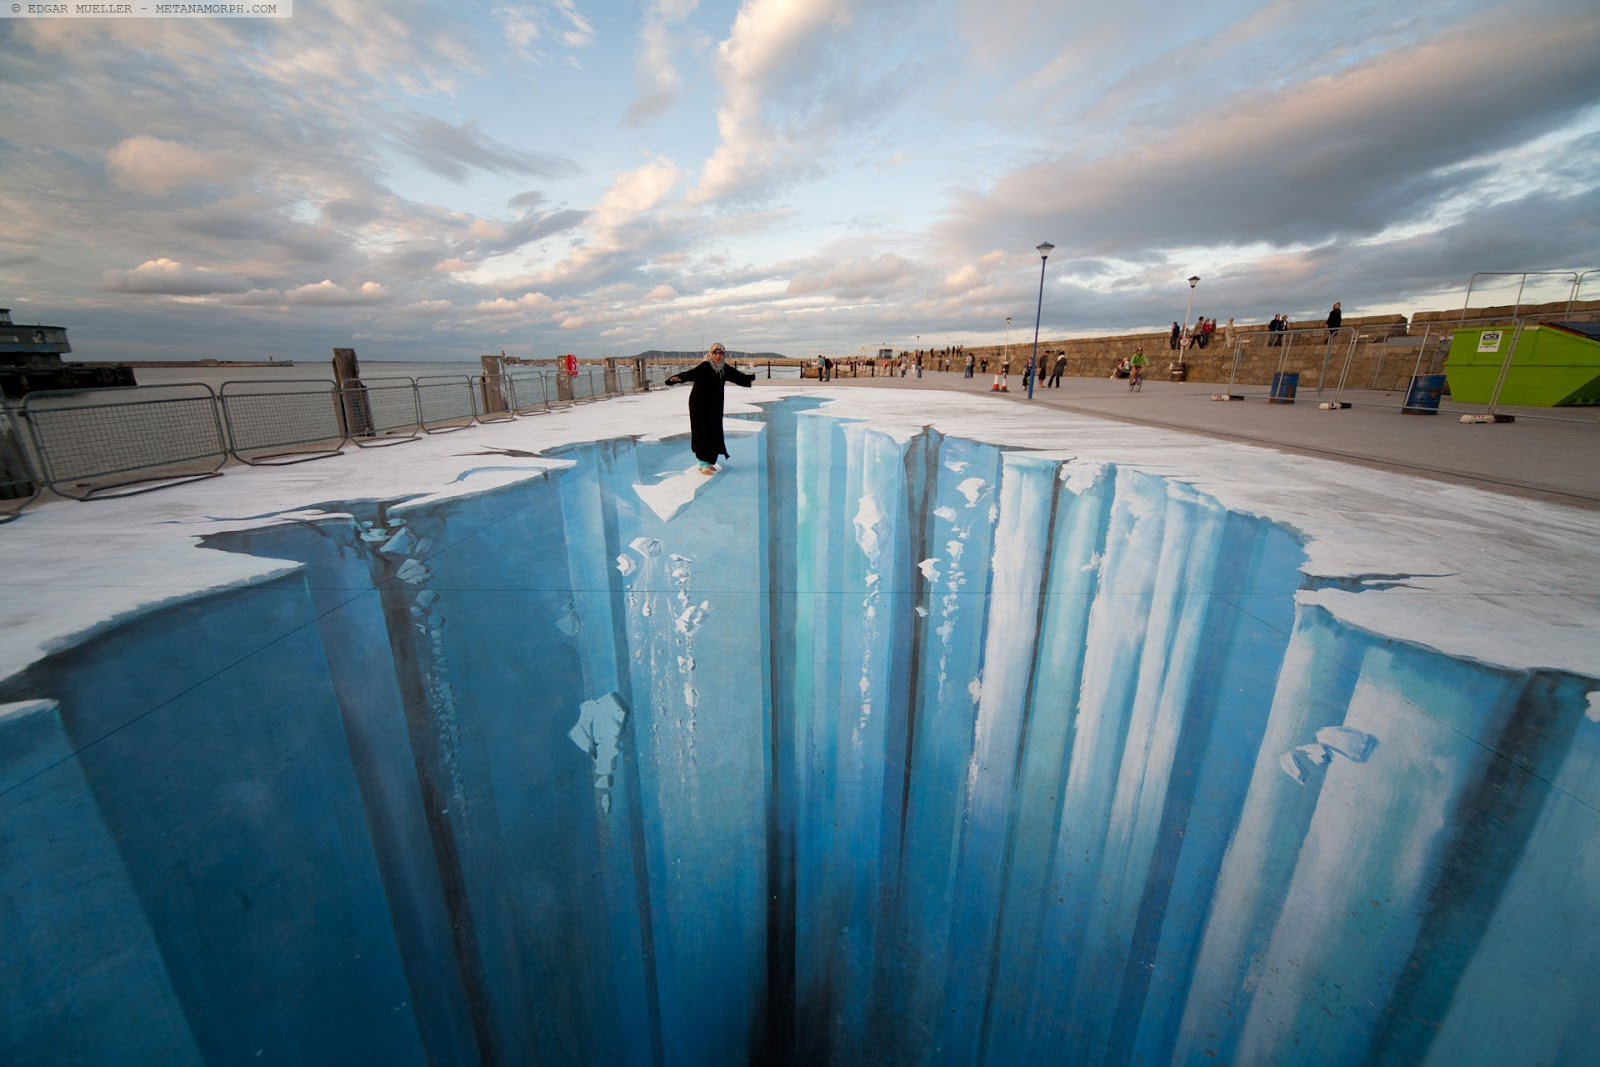 12-The-Crevasse-Edgar-Mueller-metanamorph-Enormous-Street-Art-Drawings-and-Paintings-www-designstack-co